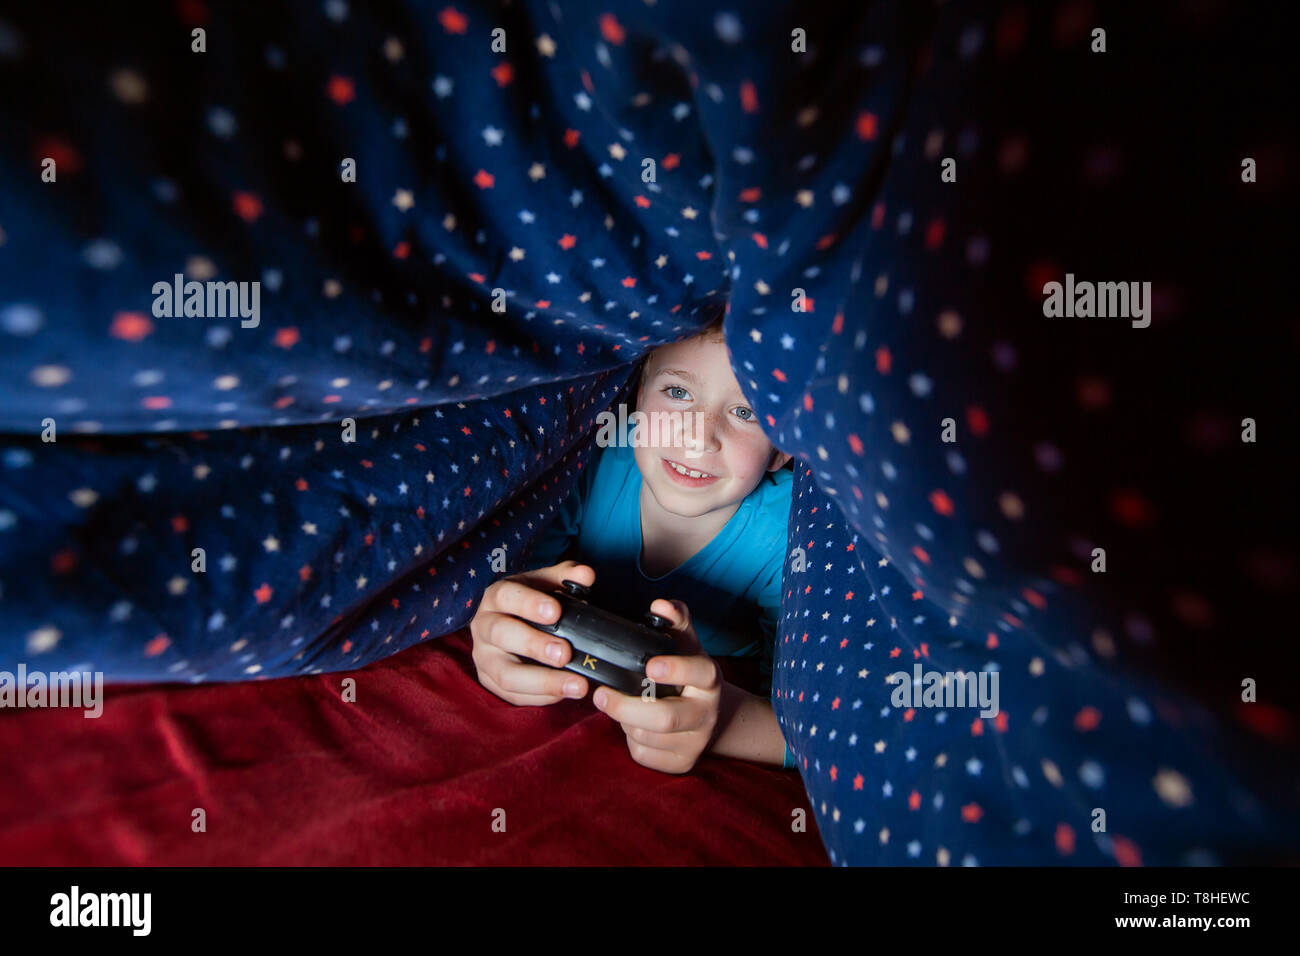 Boy, 8 years, sectretly playing a computer game in bed Stock Photo